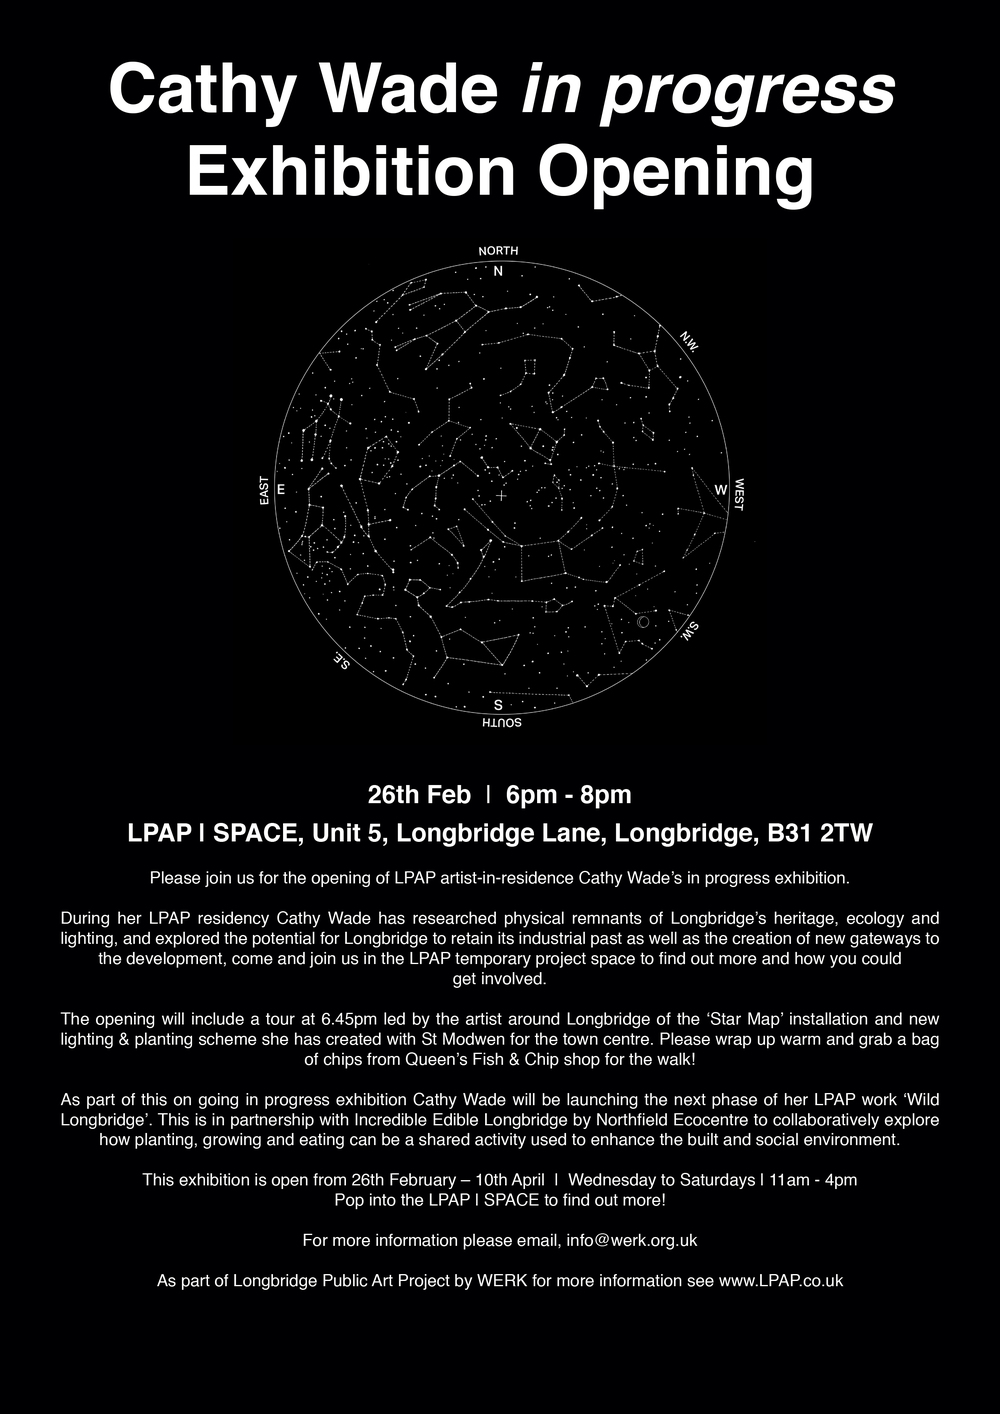 Exhibition opening flyer (star map).jpg